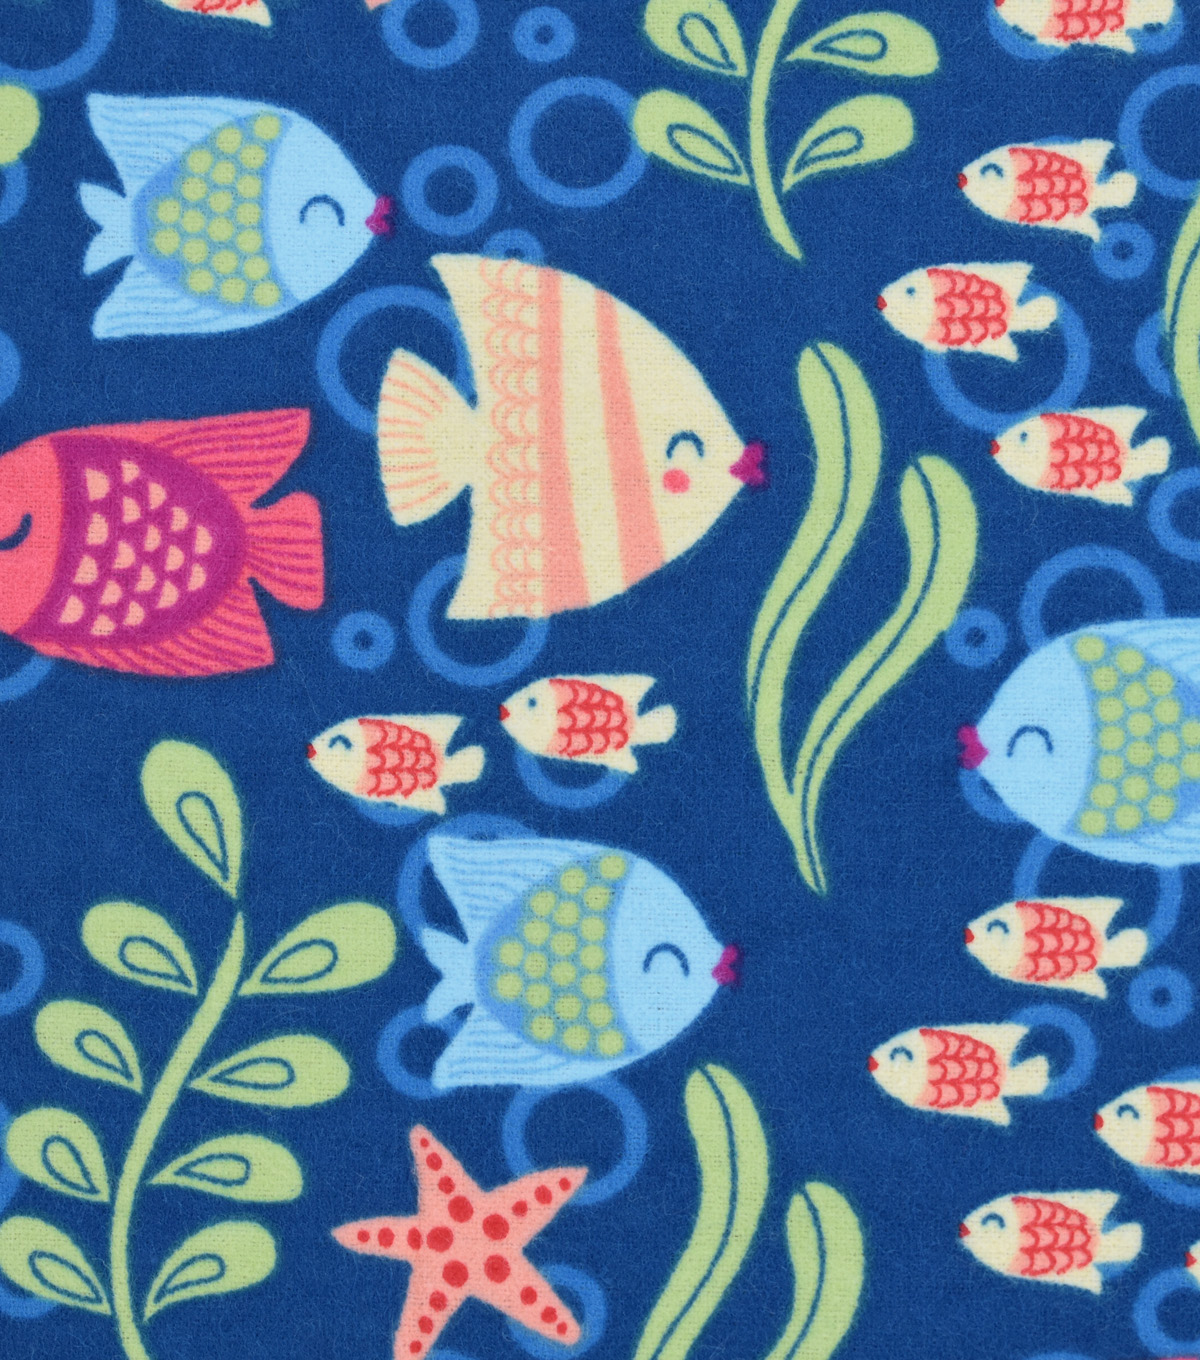 Snuggle Flannel Fabric -Kissing Fish